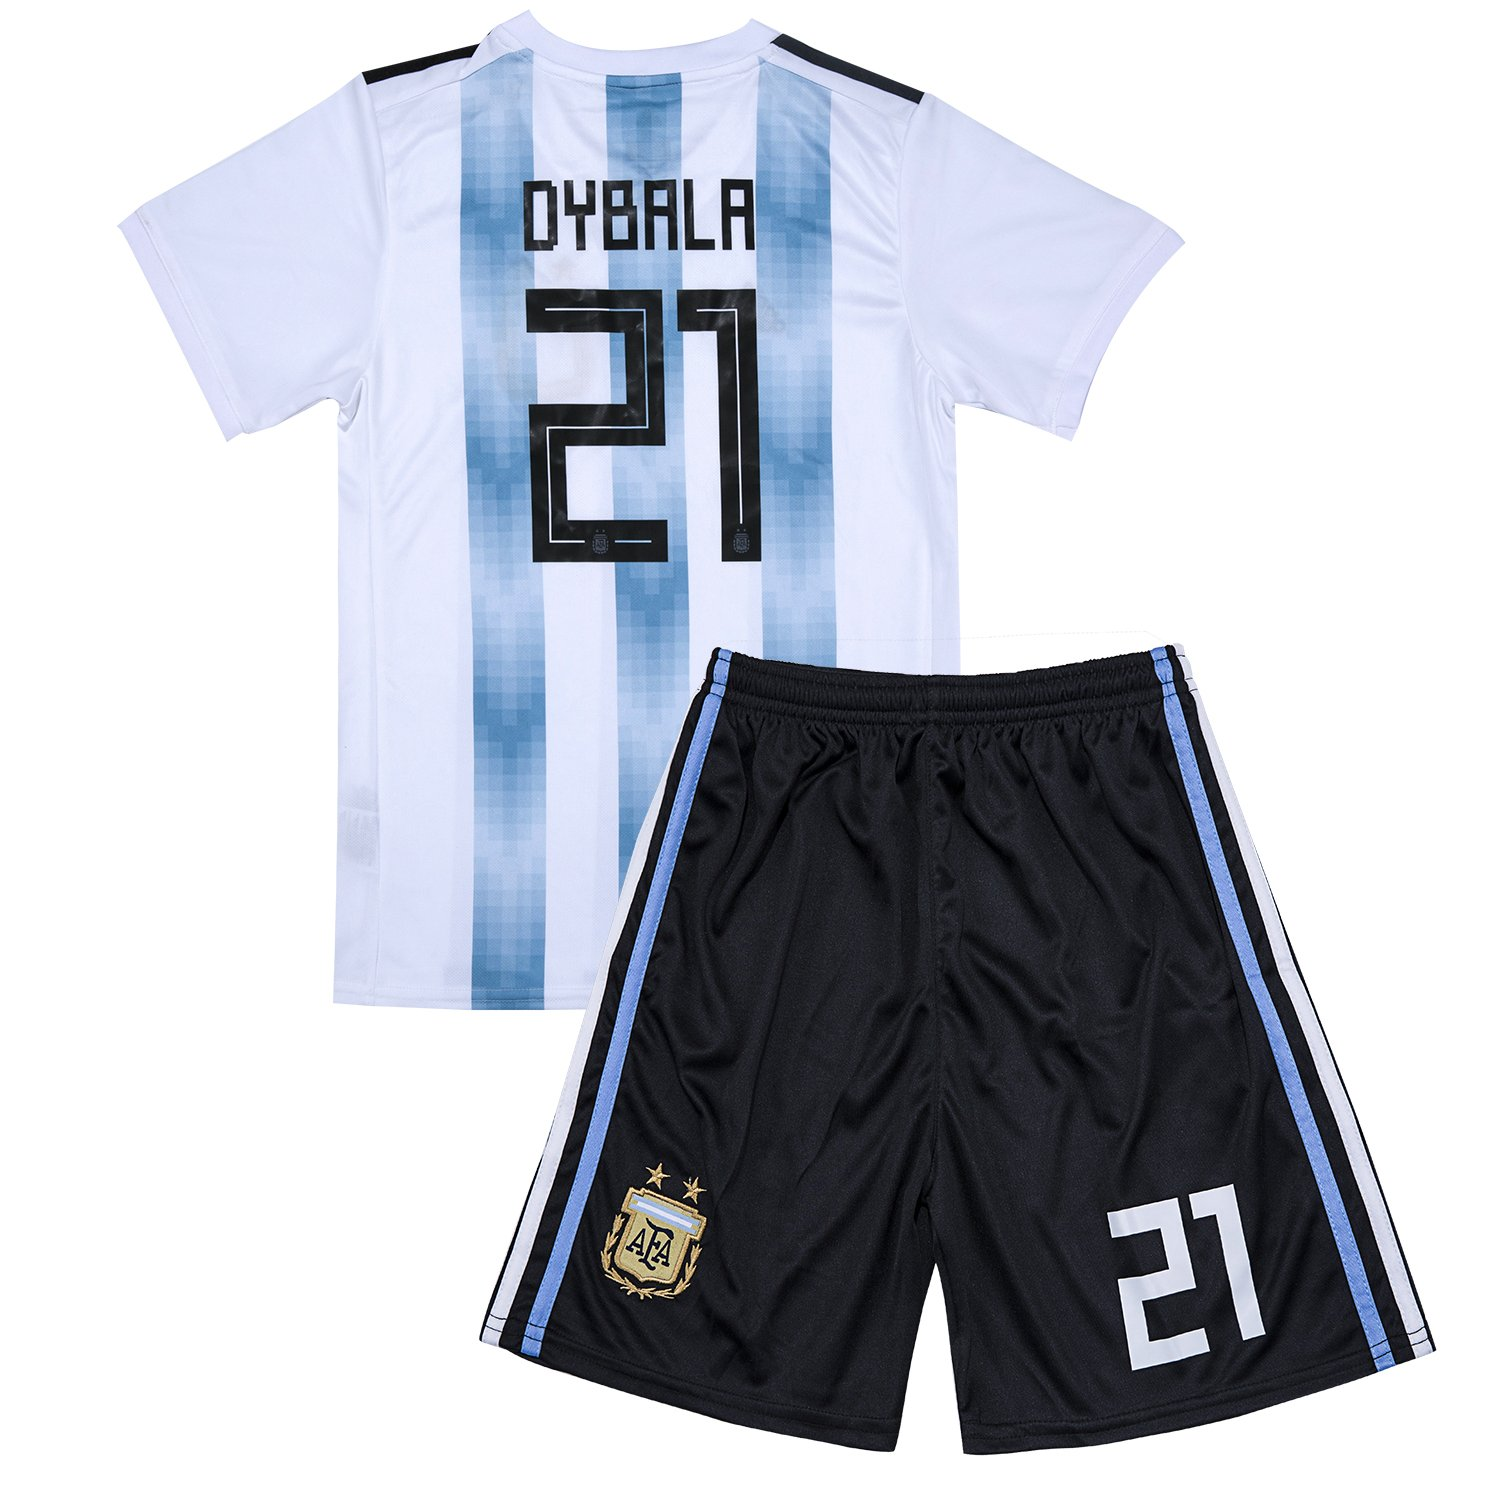 New #21 Dybala 2018 Russia World Cup Argentina National Soccer Home Jersey Kids Youth White/Blue free shipping